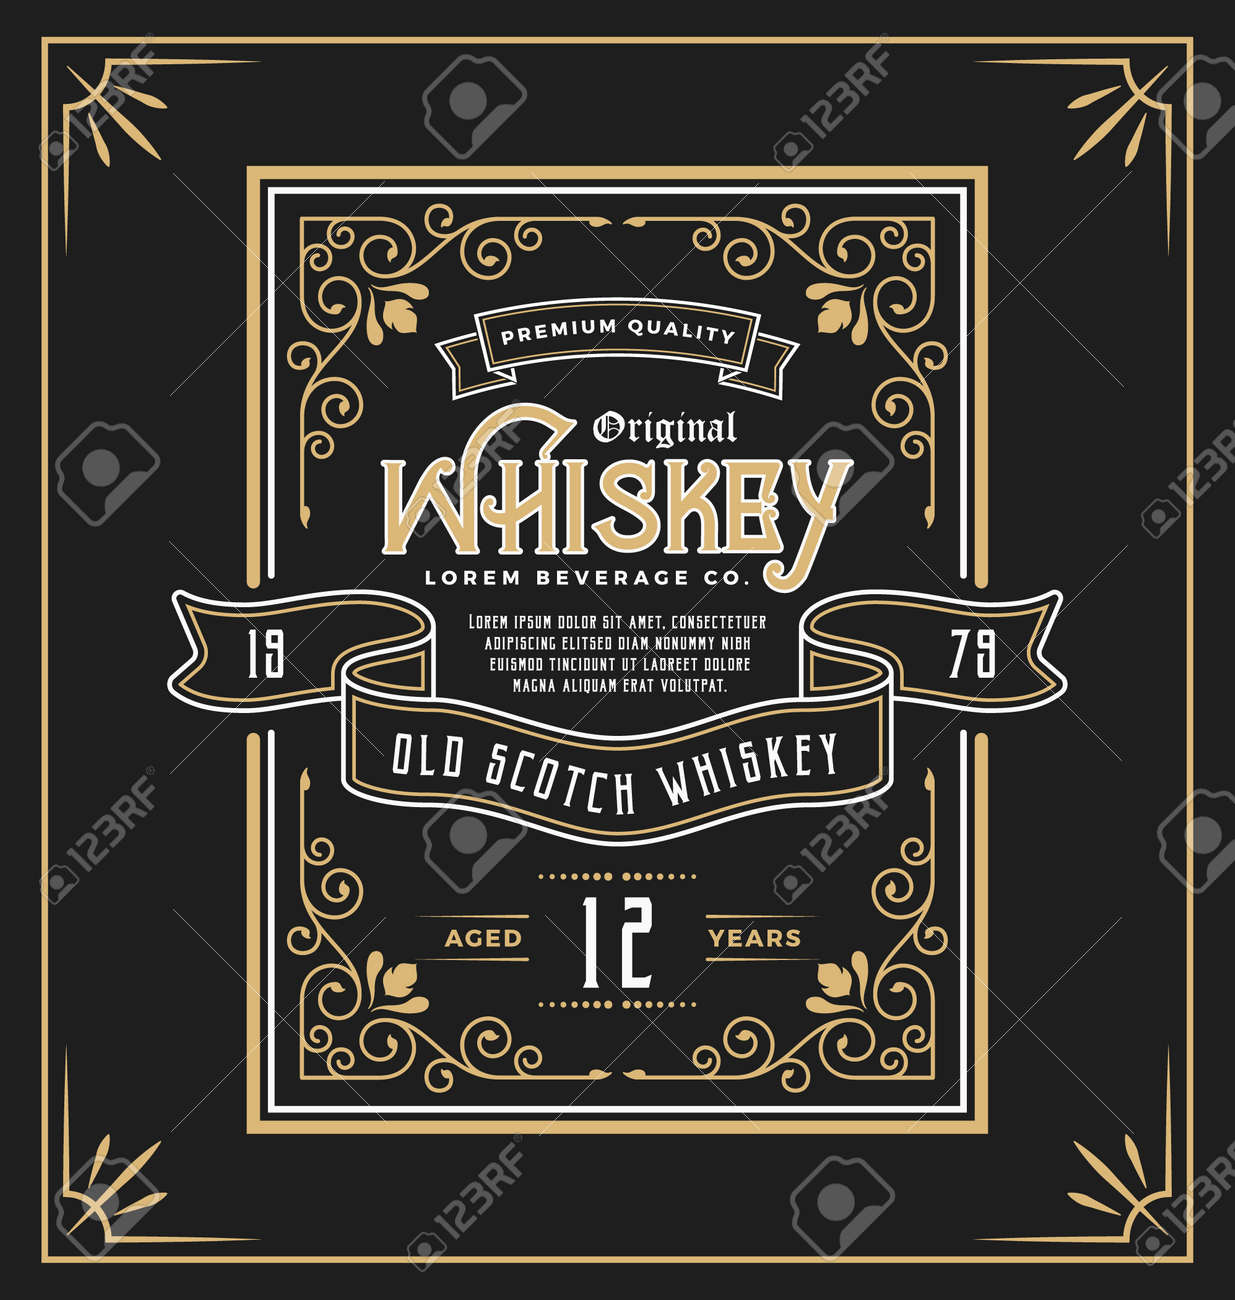 Vintage frame label for whiskey and beverage product. You can apply this for another product such as Beer, Wine, Shop decoration, Luxury and Elegant business too. illustration - 53799573